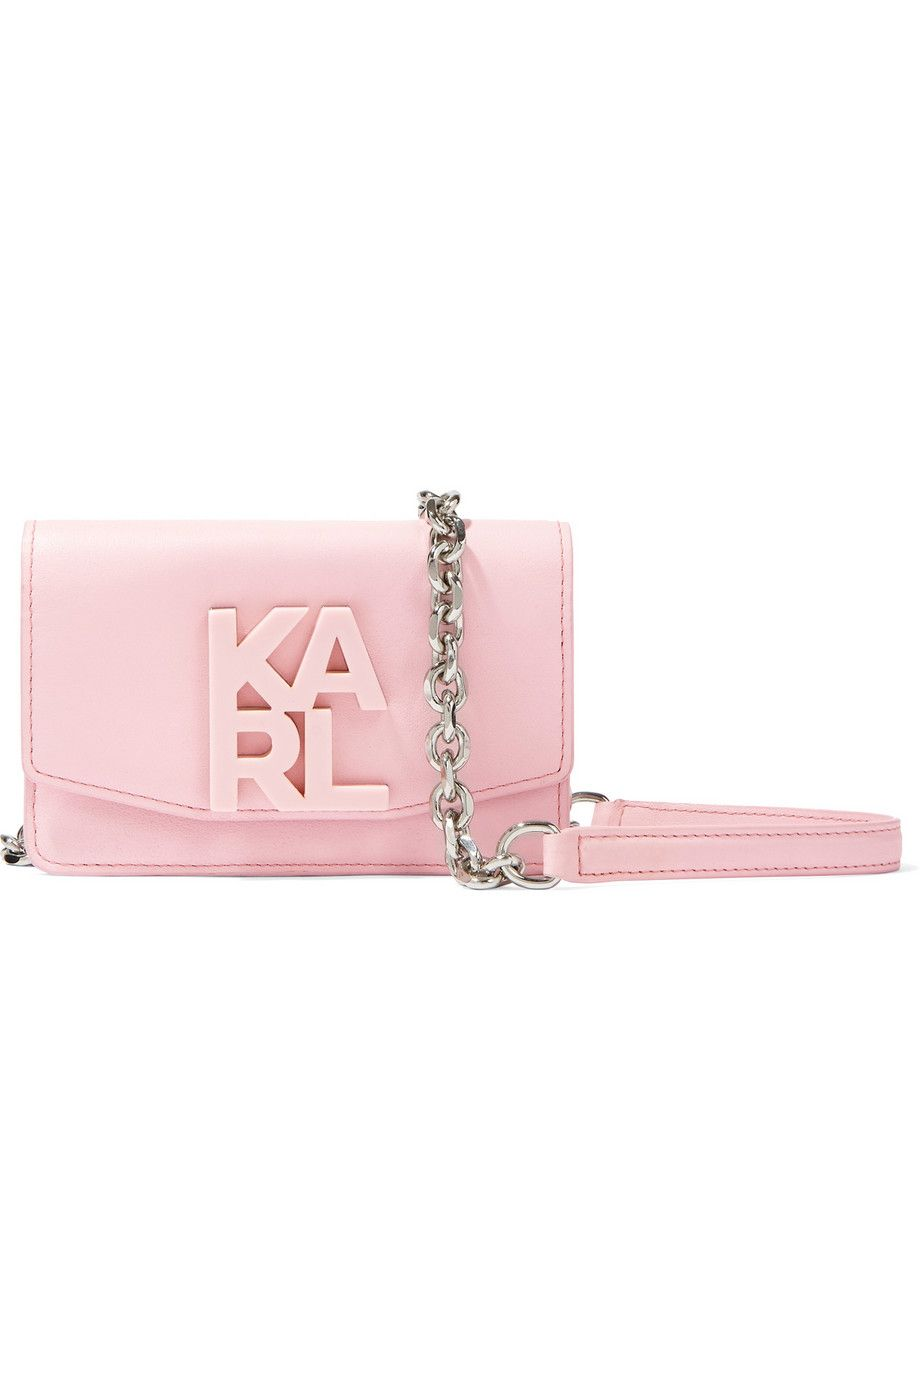 KARL LAGERFELD Mini Leather Shoulder Bag.  karllagerfeld  bags  shoulder  bags  leather 294efef5c21e7